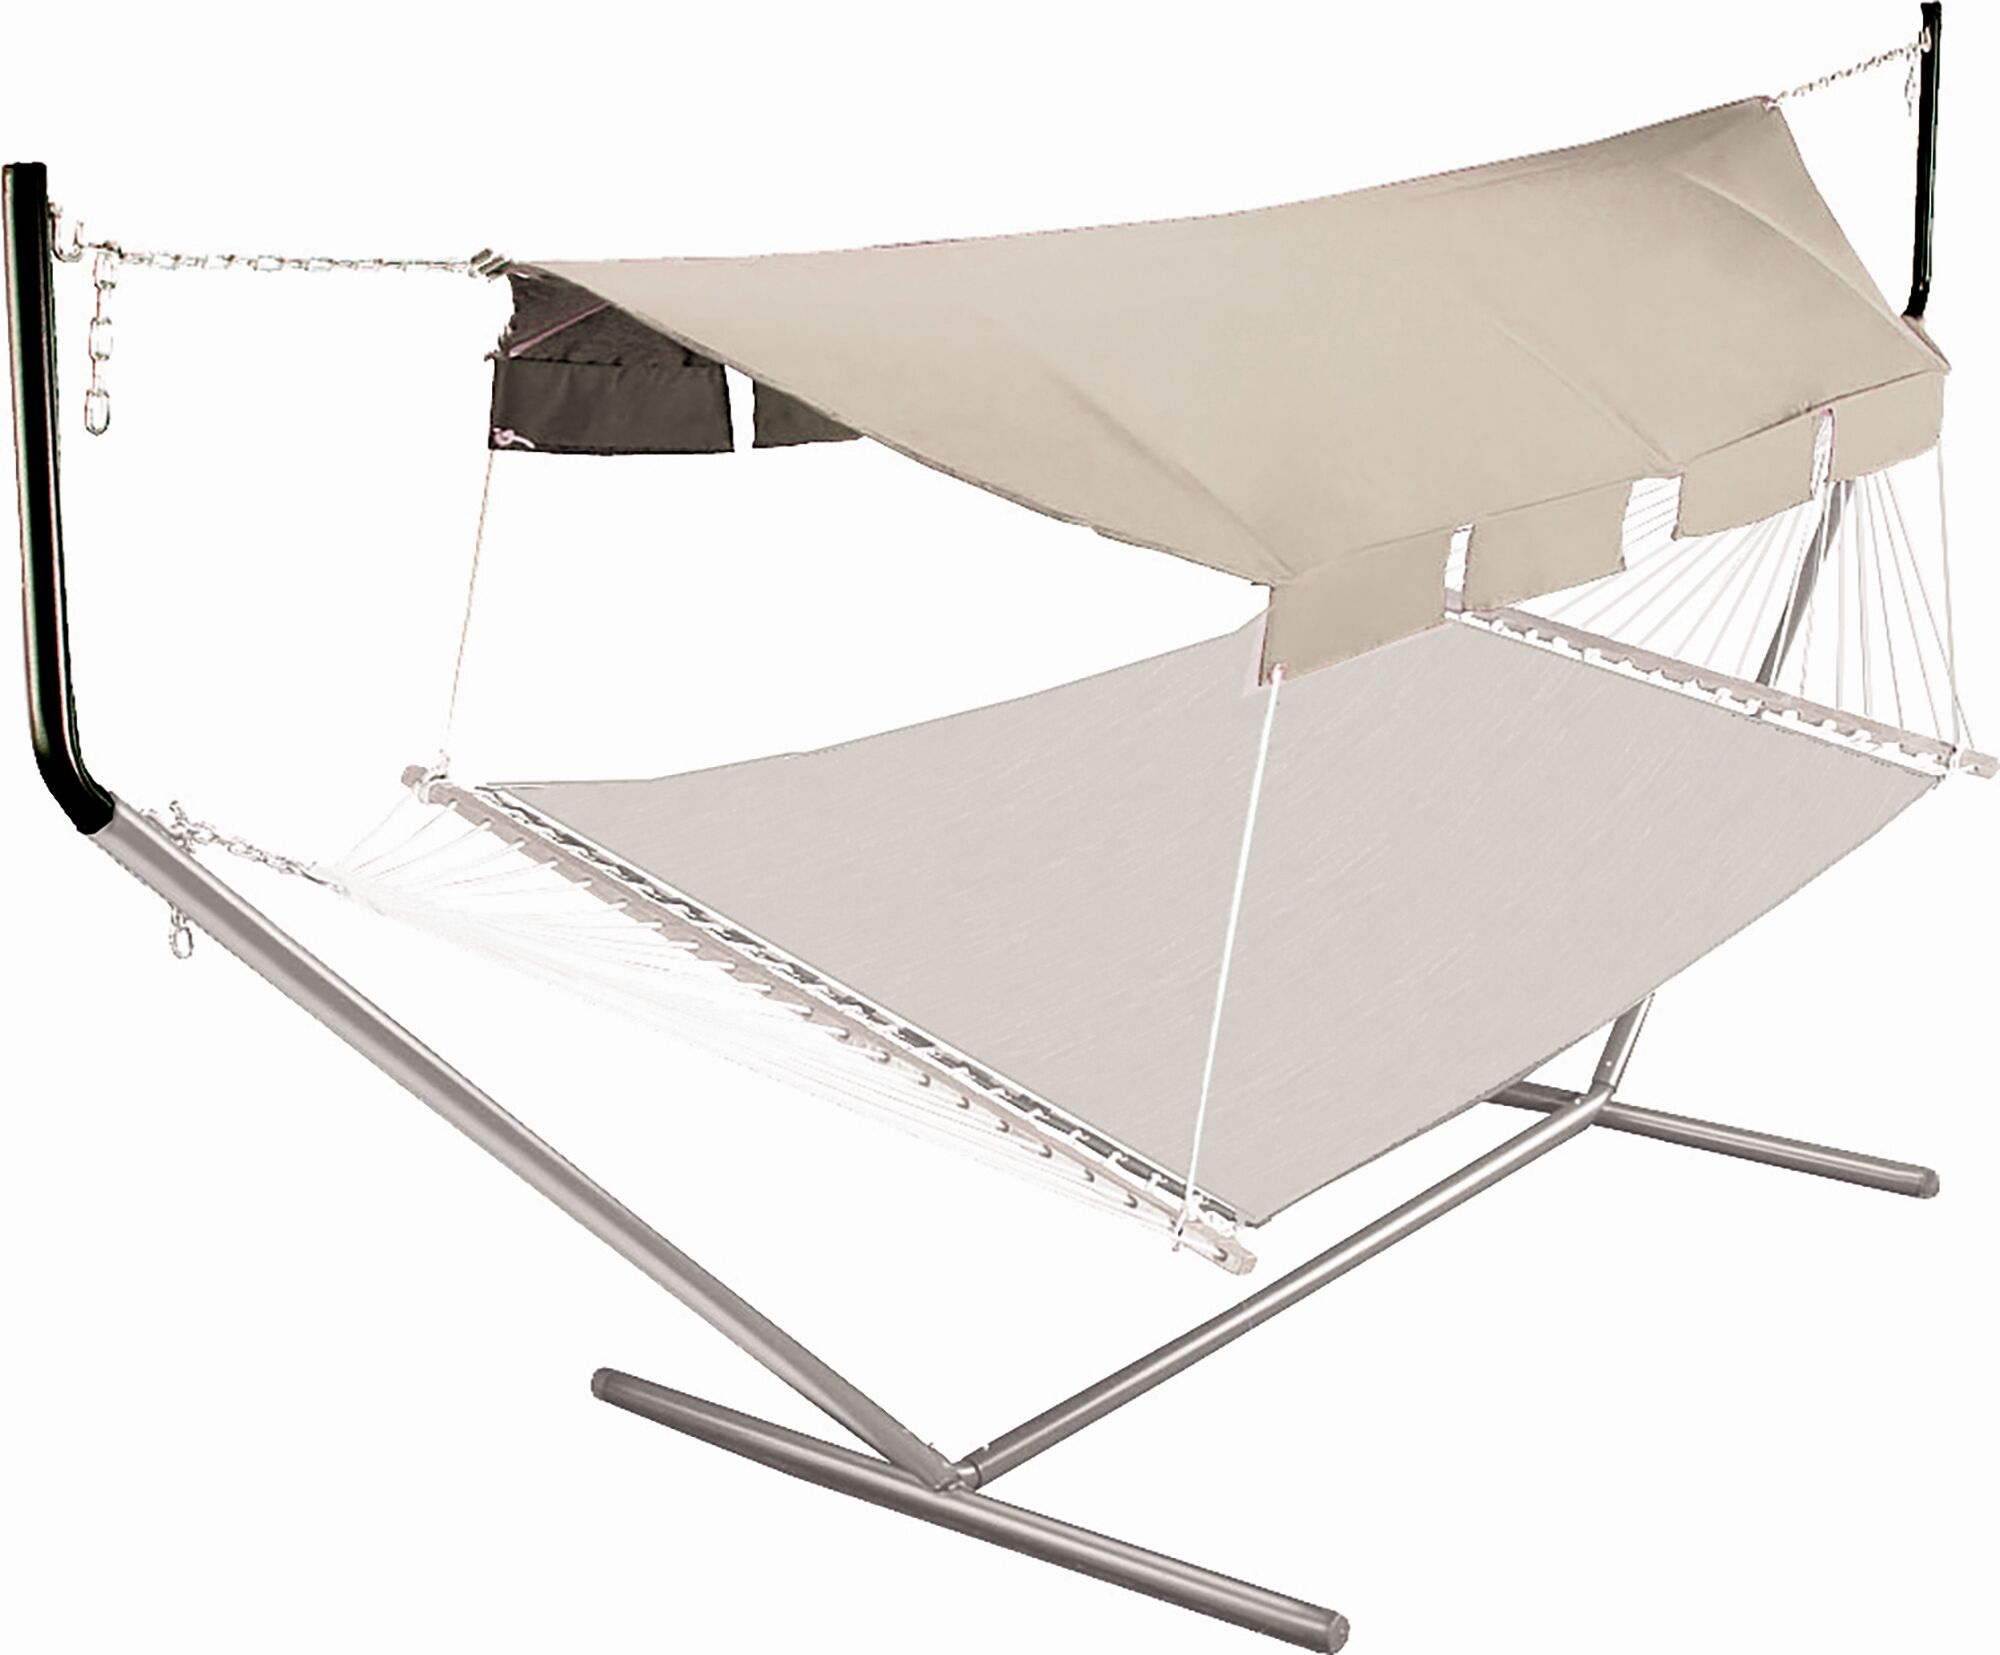 Edford Hammock Canopy Color: Black